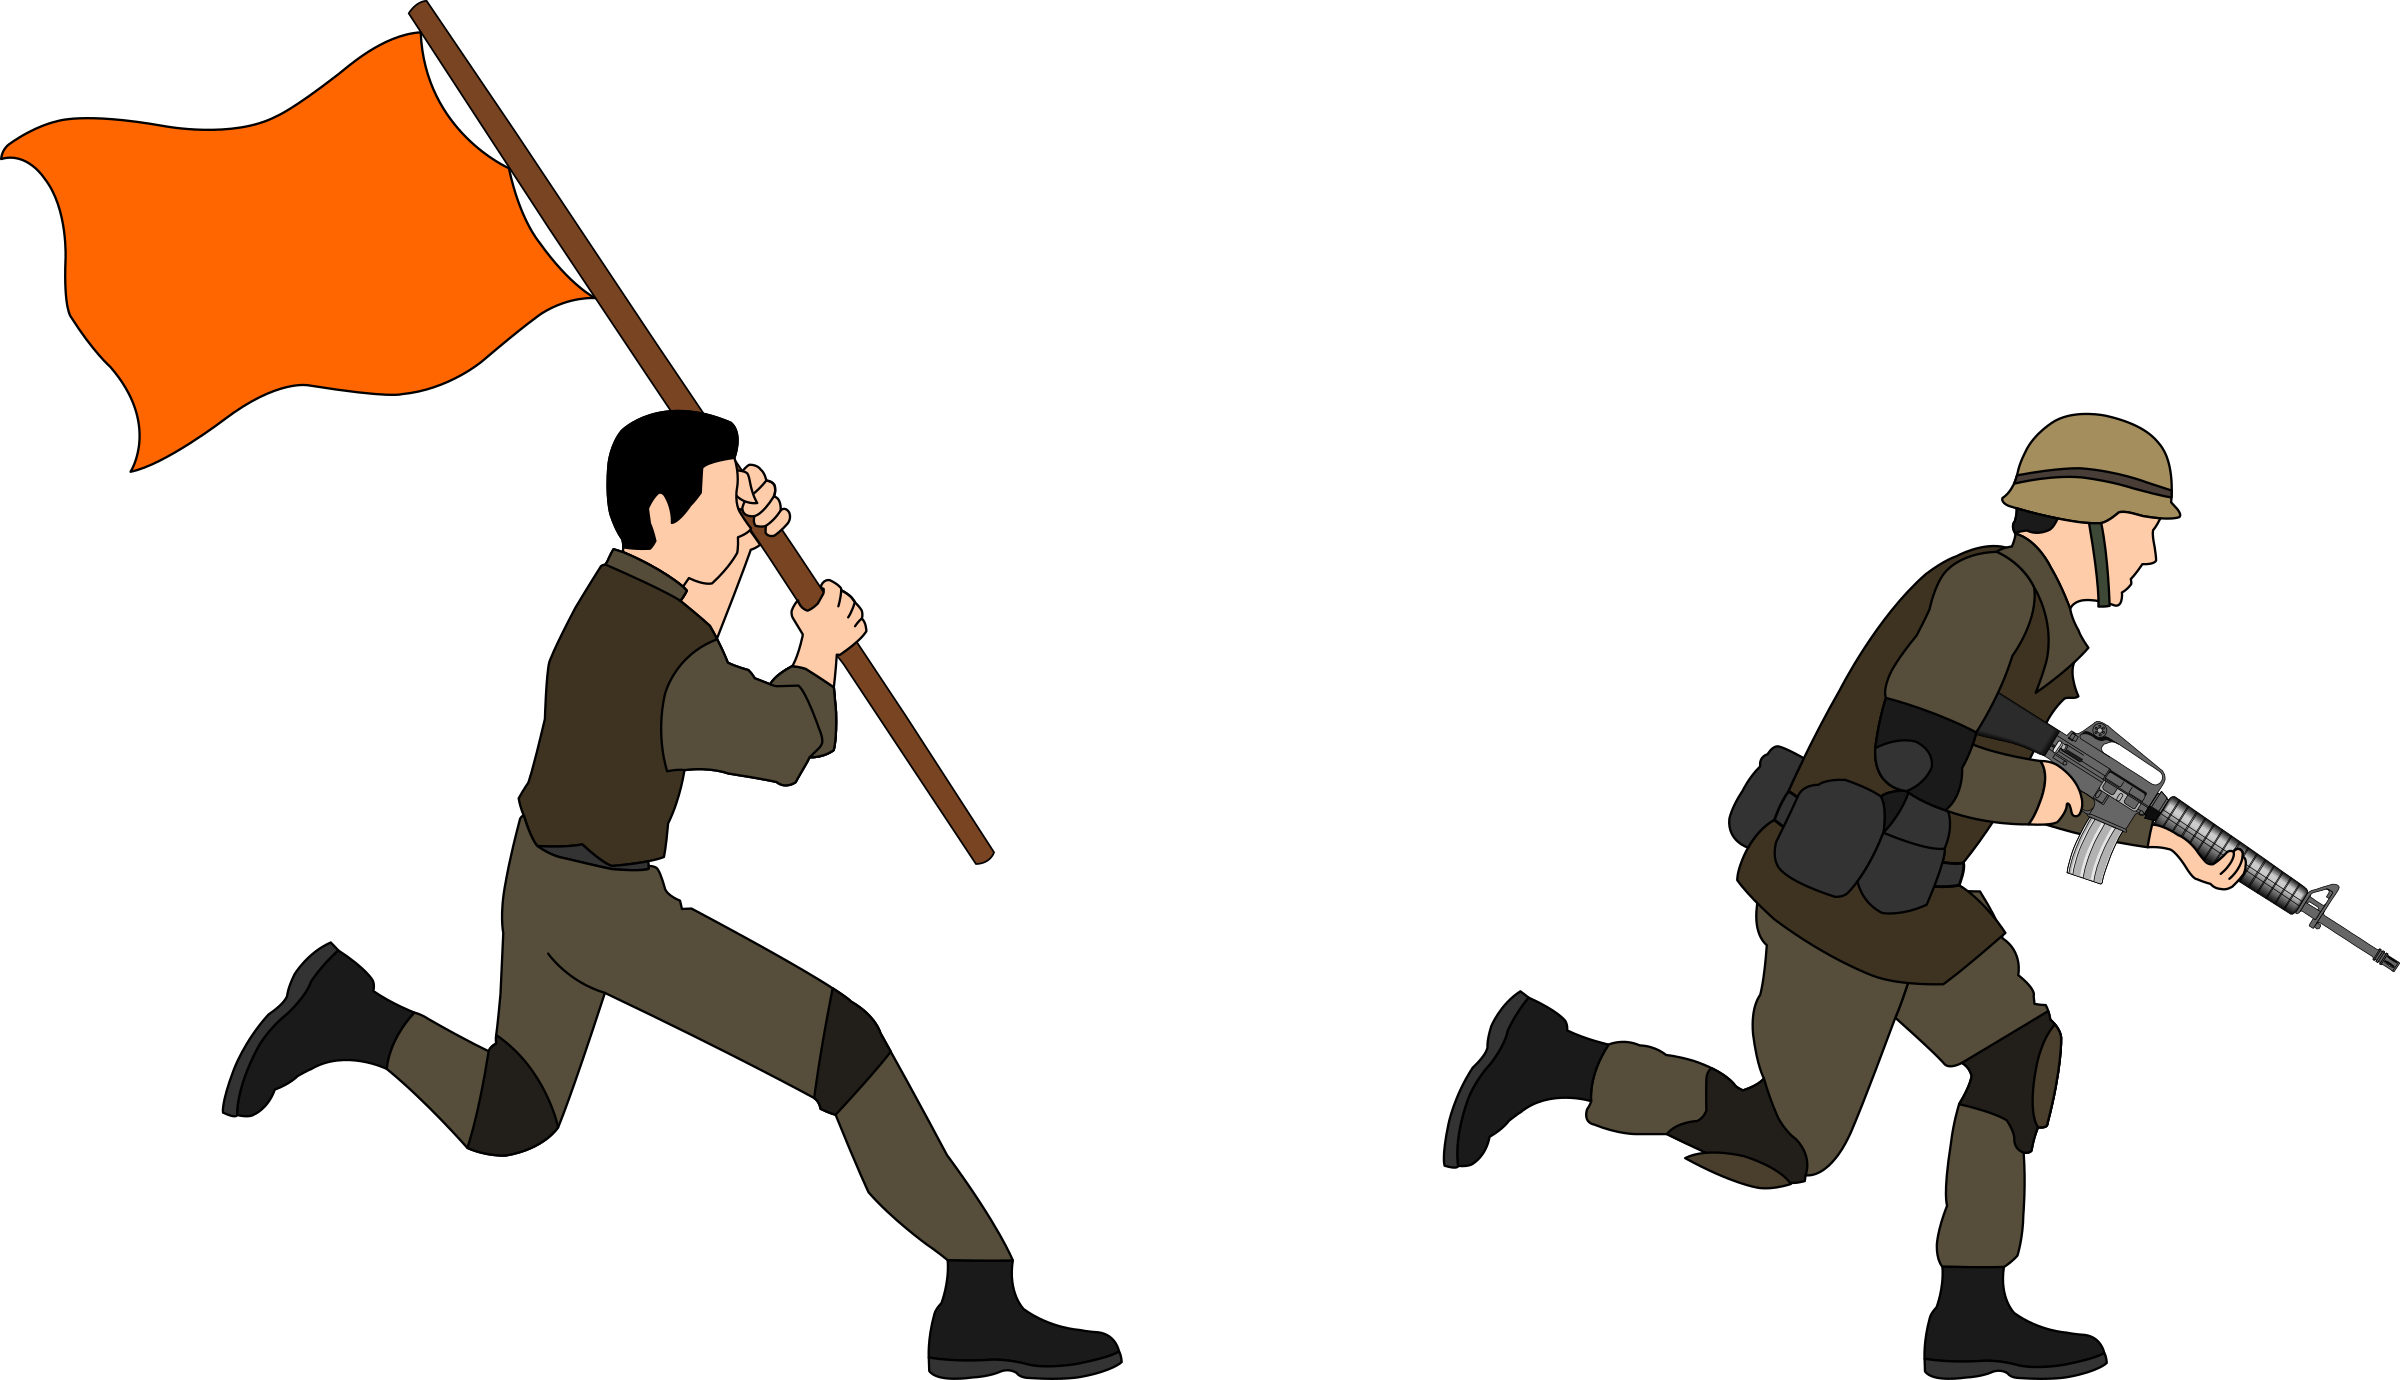 Fight clipart soldier. Soldiers charging big image